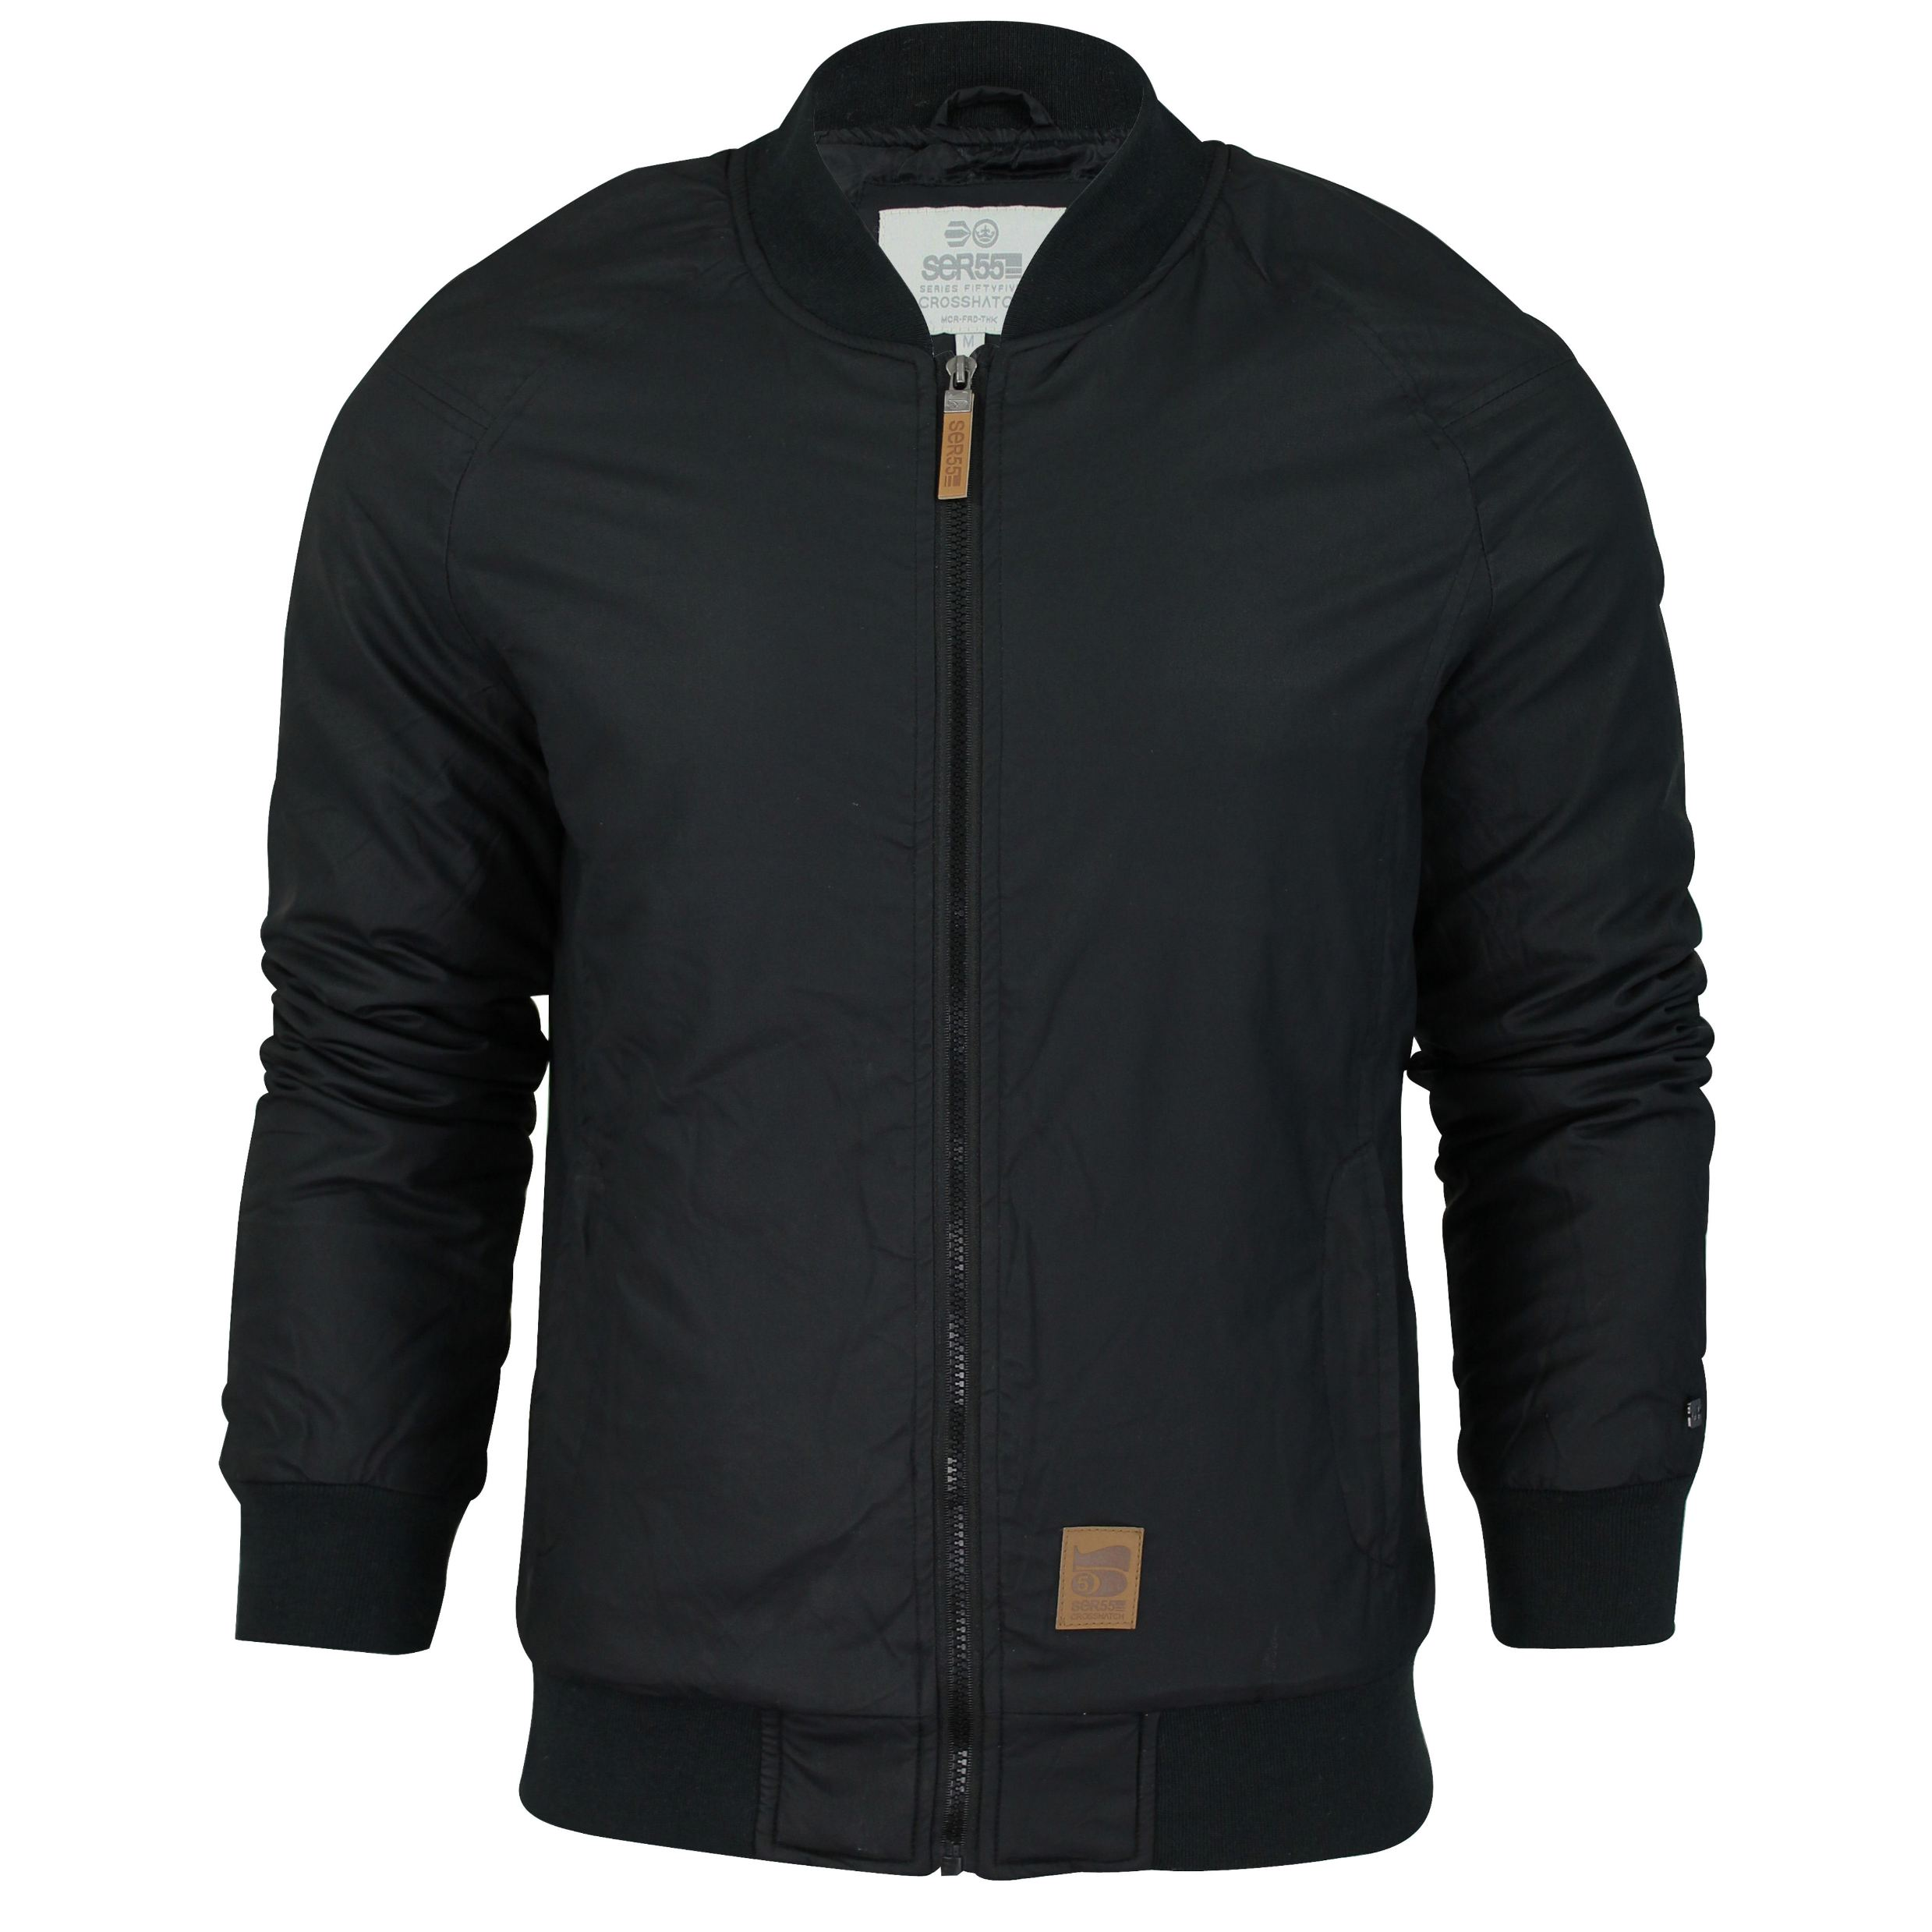 Explore leather jackets, raincoats, track jackets, fleece jackets and more to layer for warmth and style. For everyday wear, denim jackets for men are ideal. Bomber jackets for men are great for classic style.